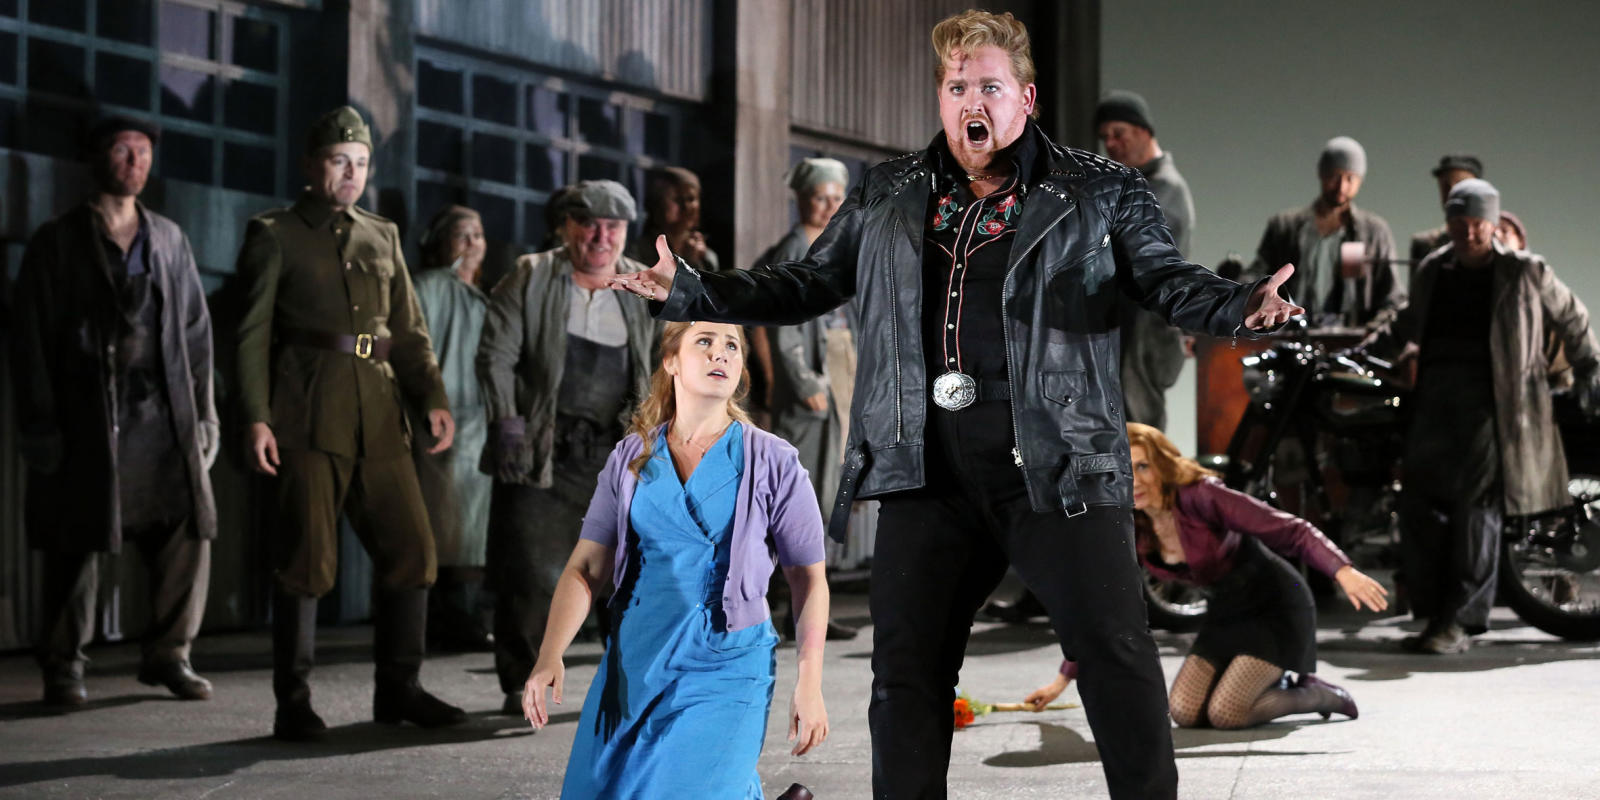 Man with ginger hair in leather jacket sings while group watches in ENO's Jenufa